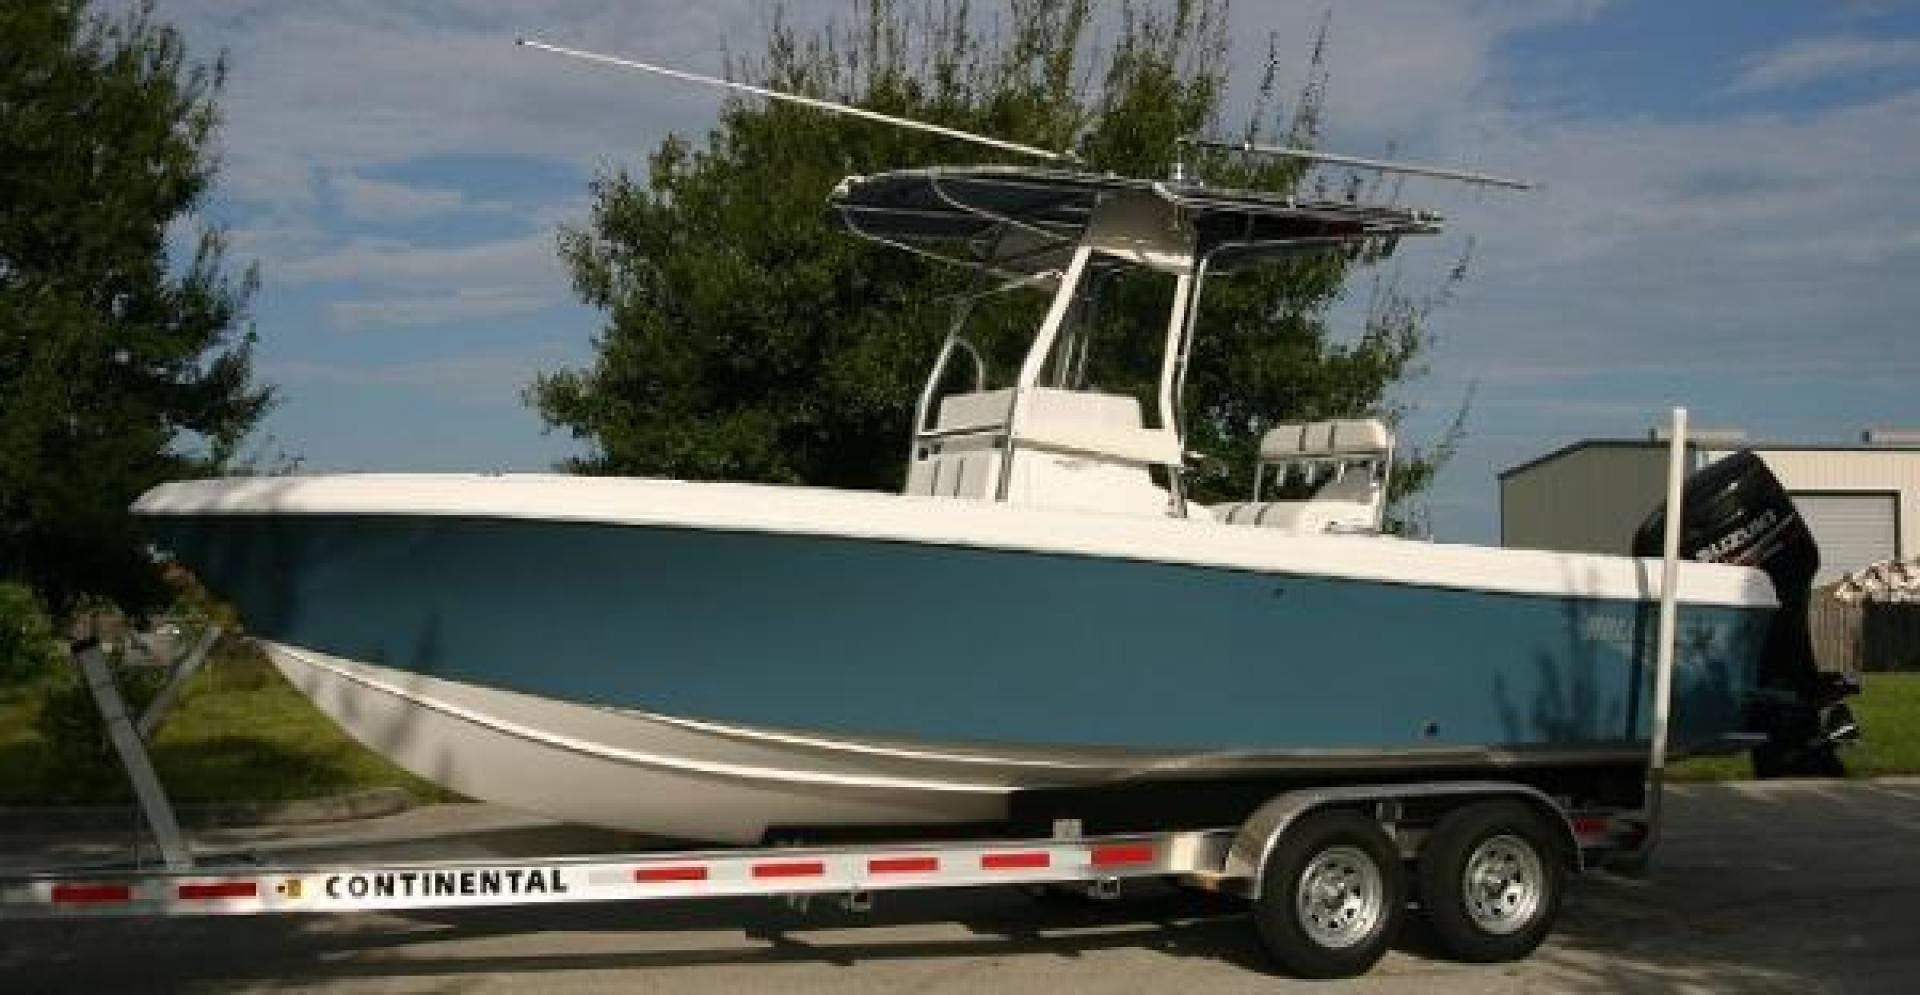 2020 Bluewater Sportfishing 22' 23t Bluewater Sportfishing 23t | Picture 4 of 7